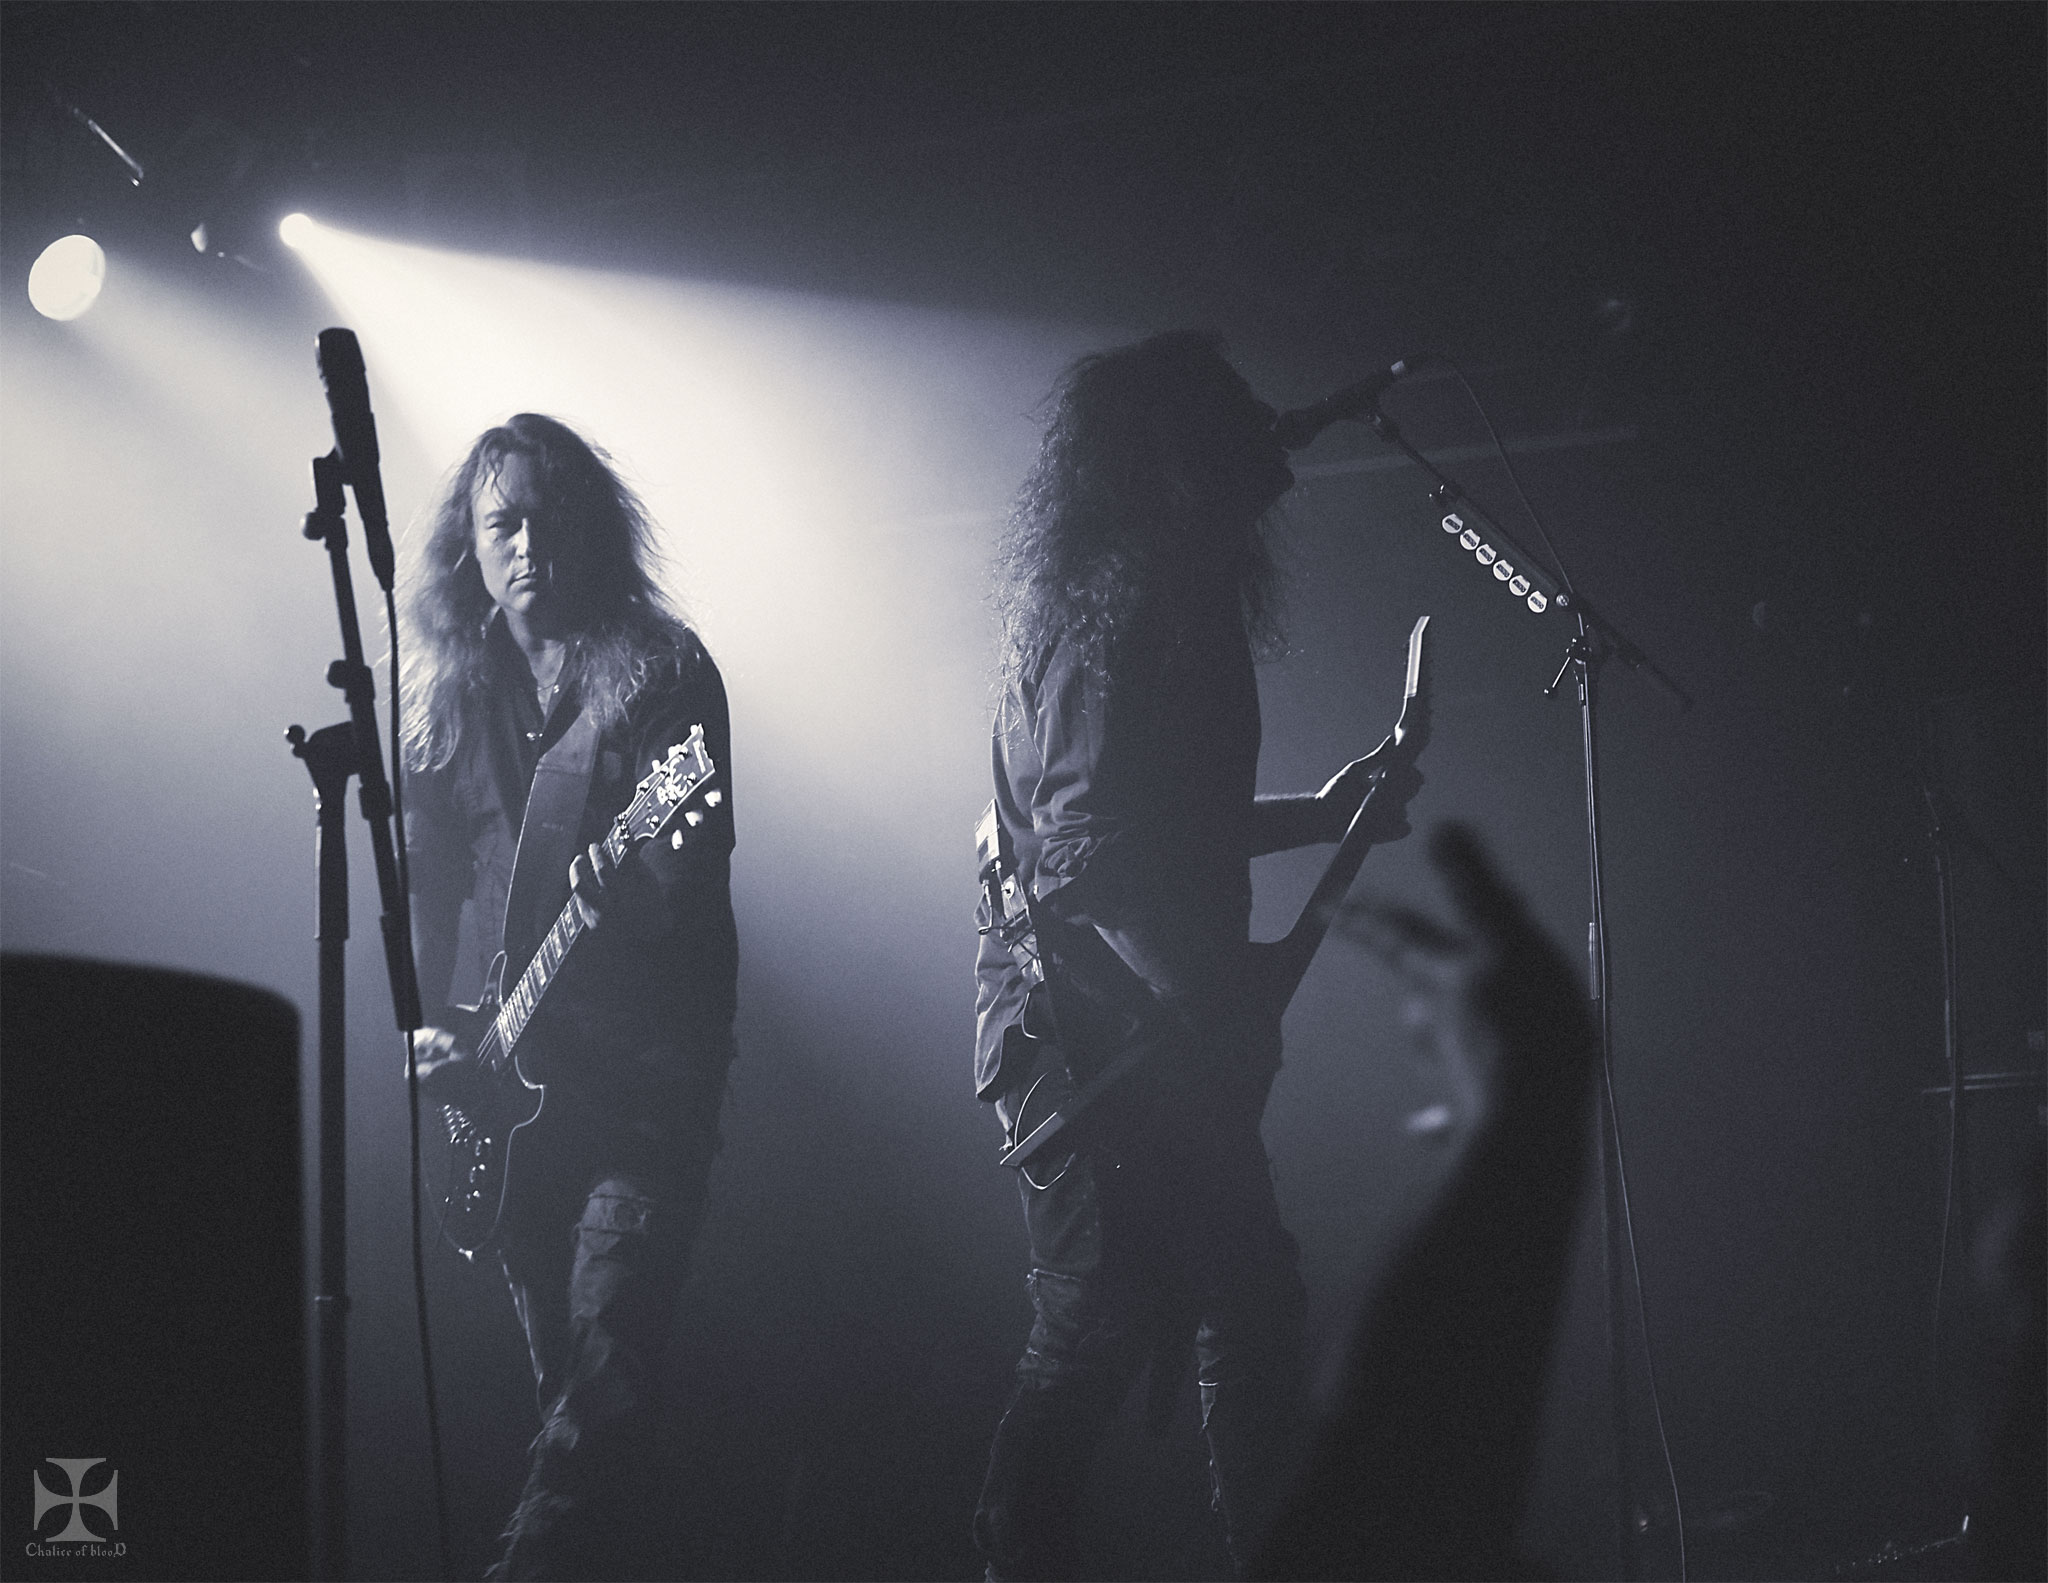 Kreator-0348-Exposure-watermarked.jpg